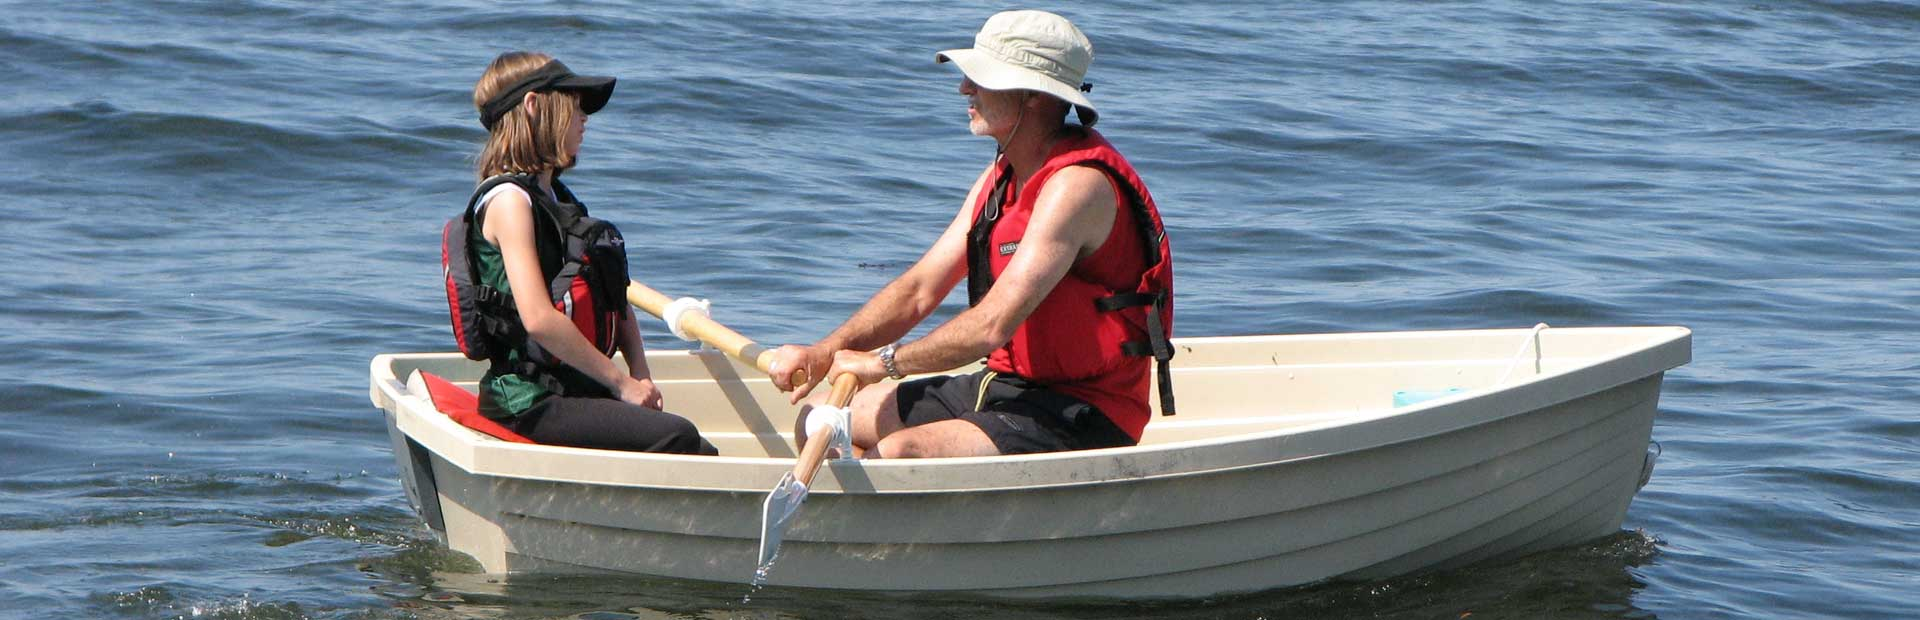 Father and daughter in small rowboat on a lake as Father rows.